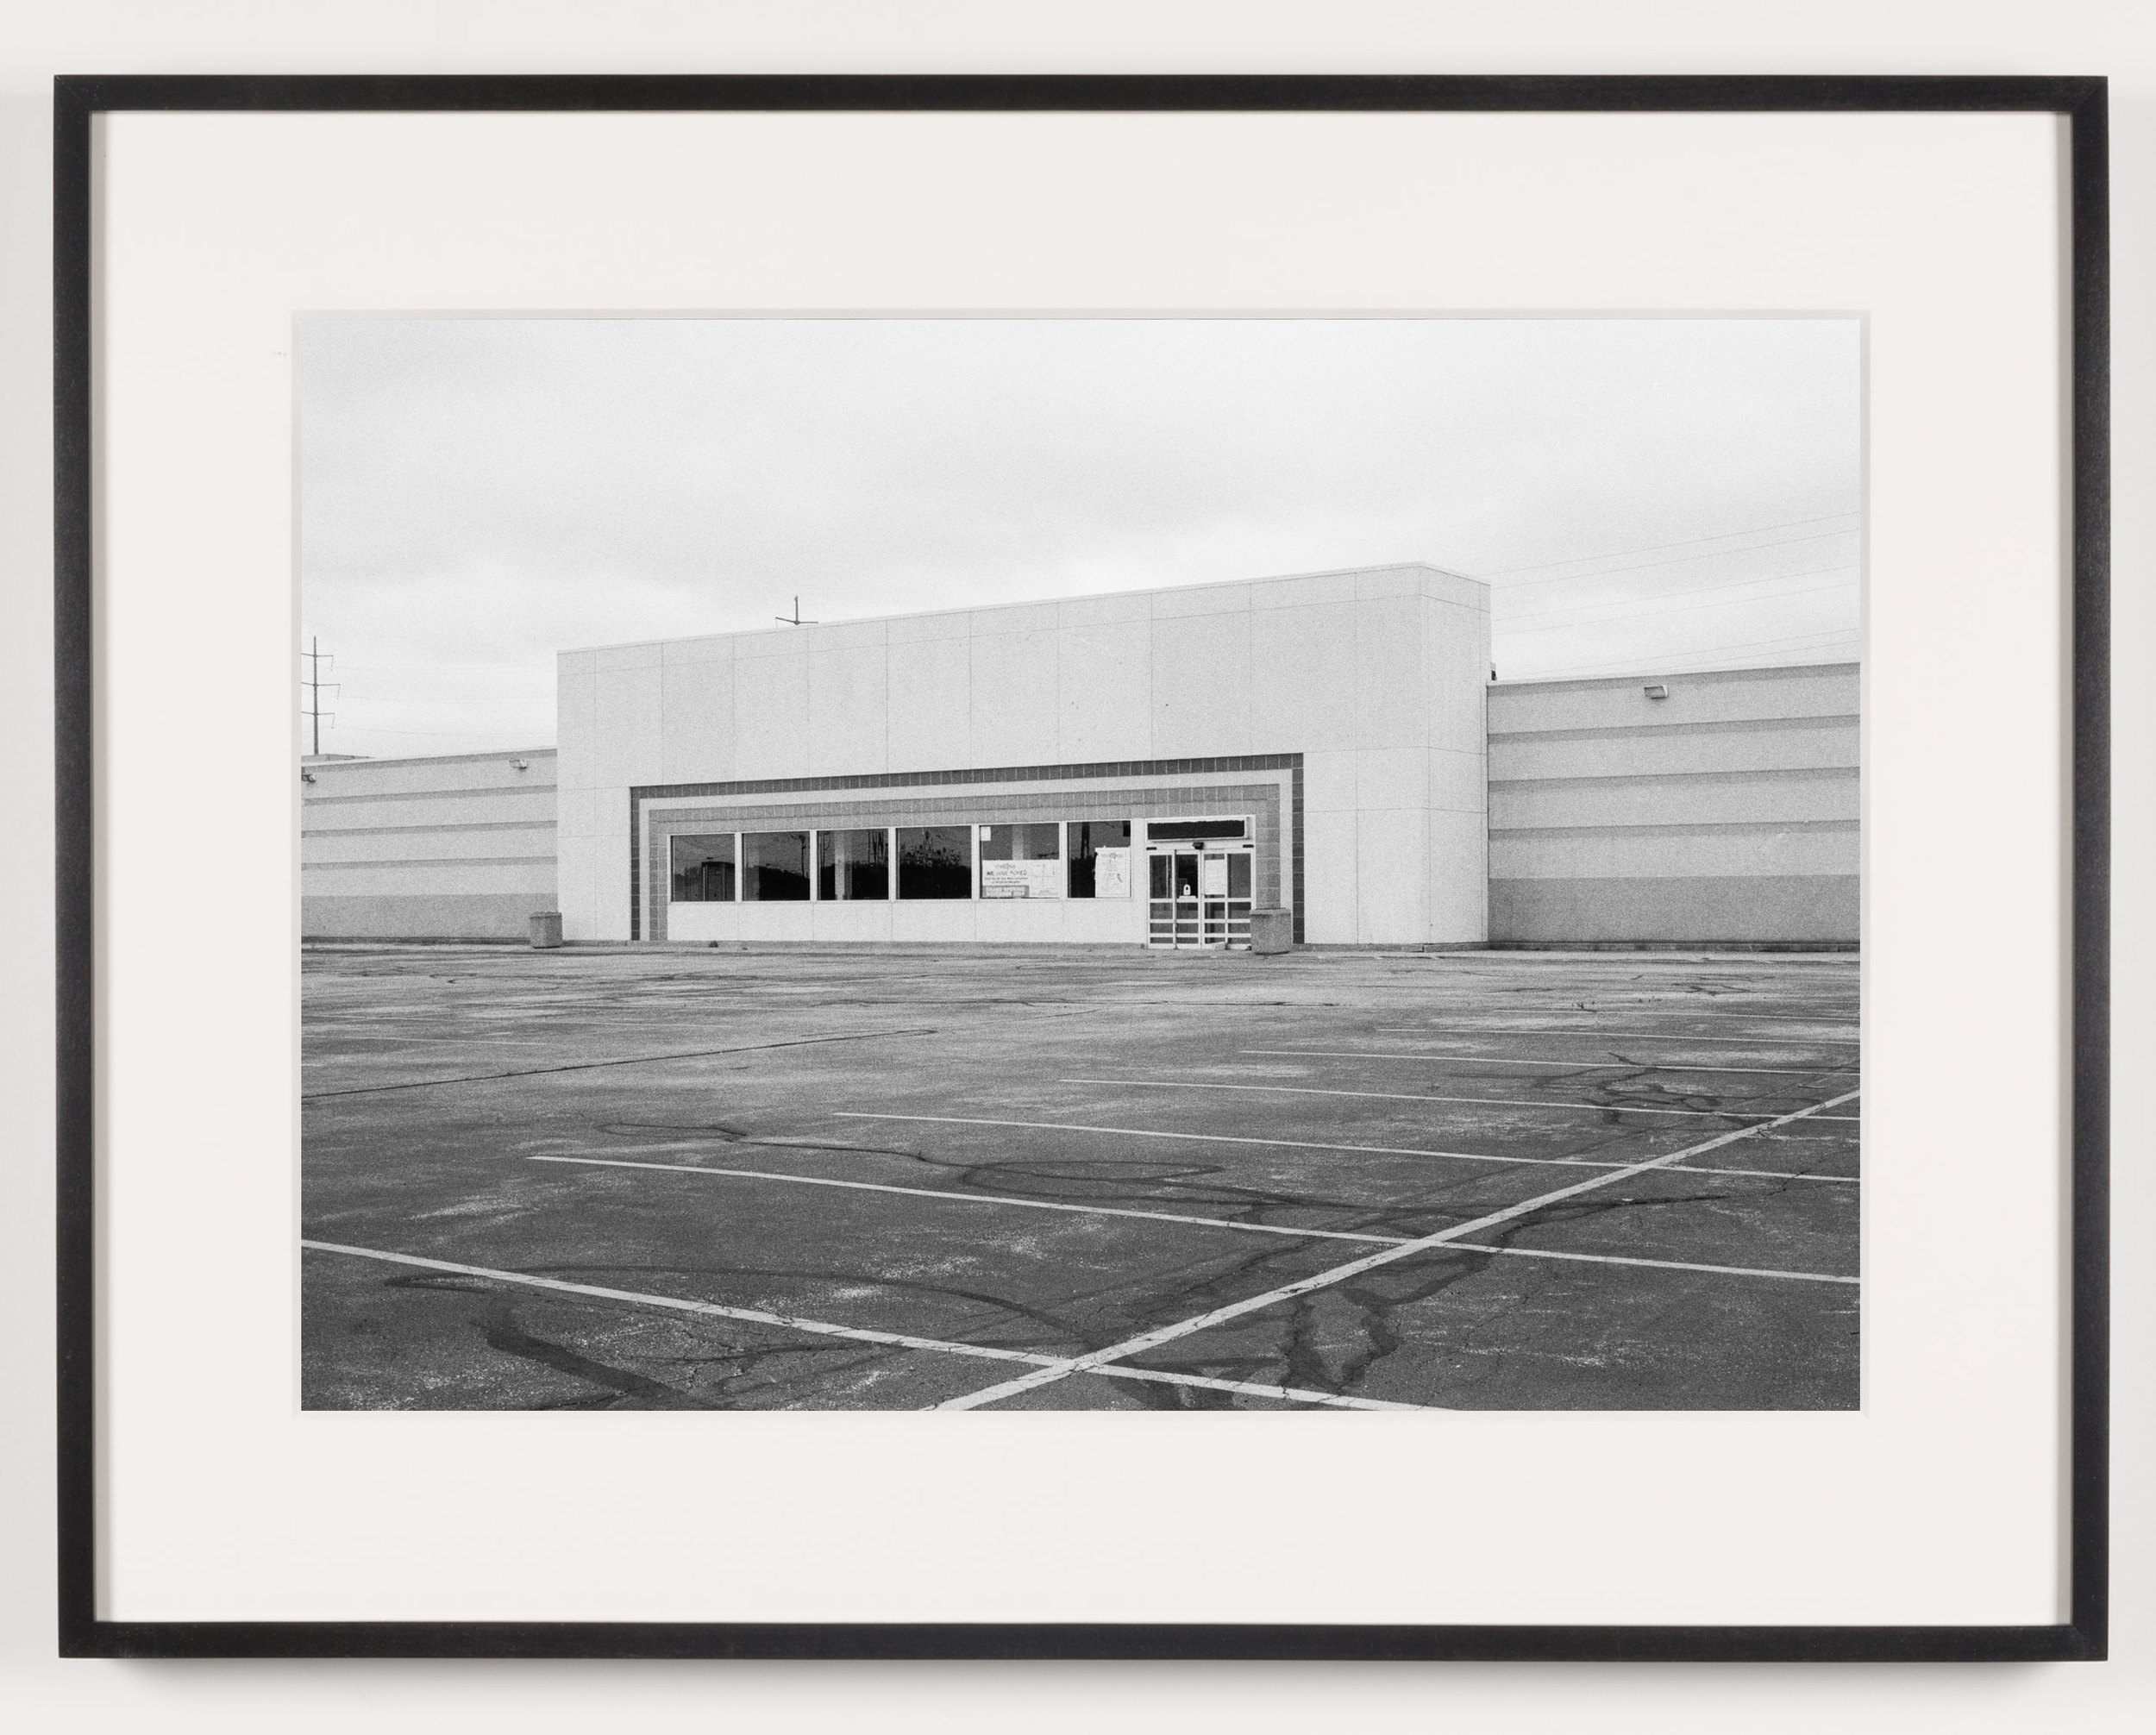 'Toys 'R Us' (View of Exterior), North Randall, OH, Est. 1986    2011   Epson Ultrachrome K3 archival ink jet print on Hahnemühle Photo Rag paper  21 5/8 x 28 1/8 inches   American Passages, 2001–2011